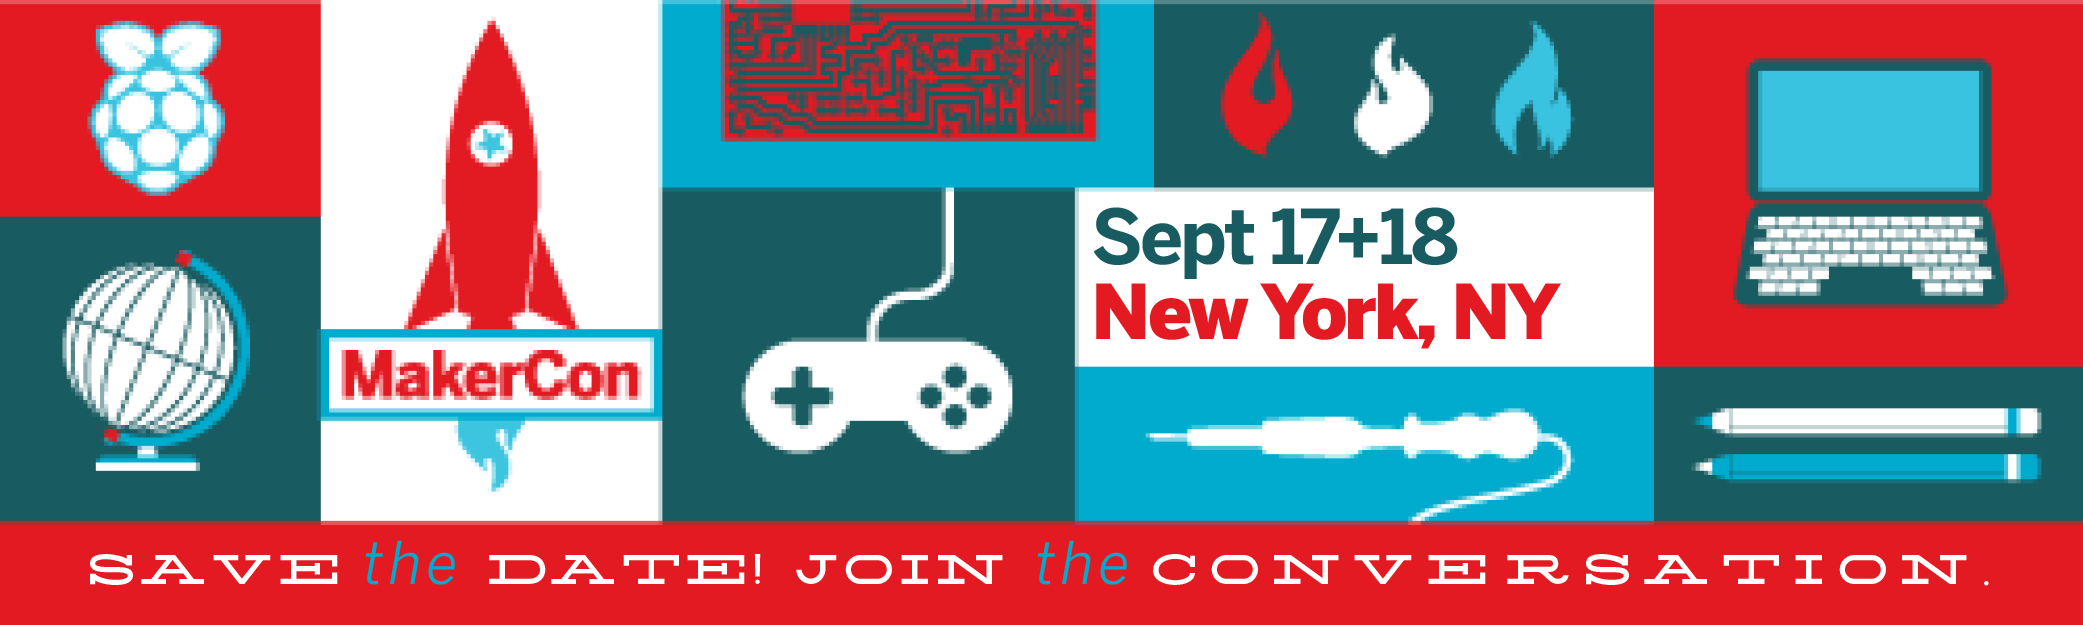 MakerCon NY 500x150_savethedate